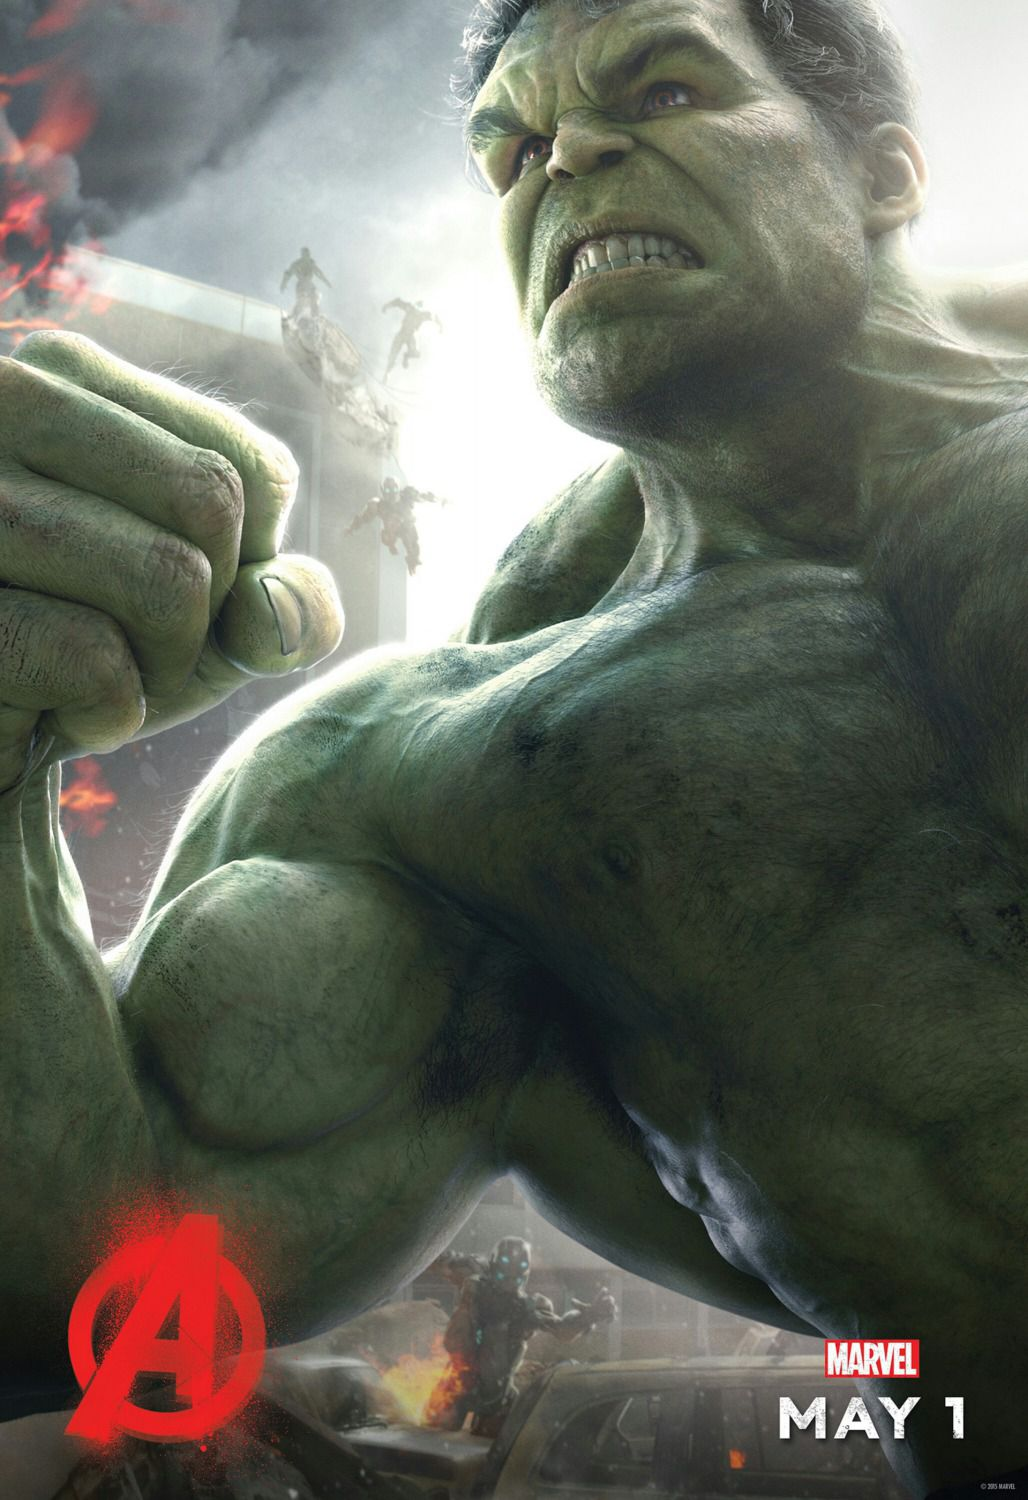 Avengers 2 - Age of Ultron . poster - Hulk